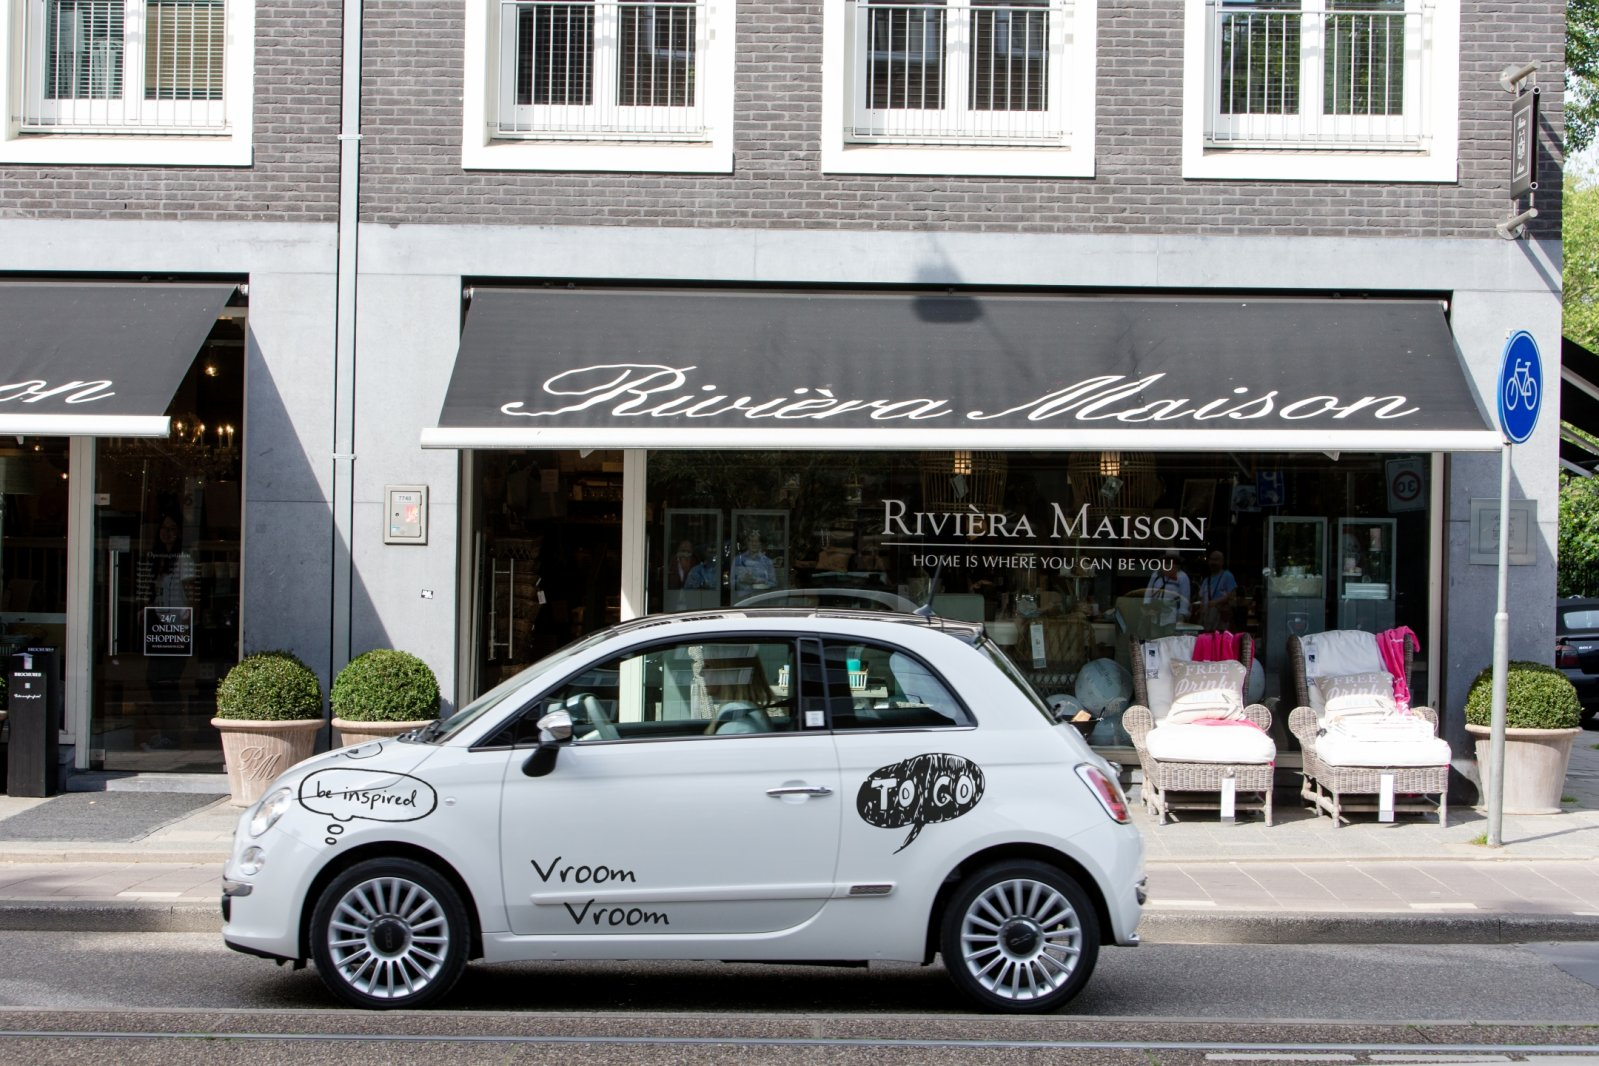 rivi ra maison maakt cht vrouwenautootje van fiat 500 autonieuws. Black Bedroom Furniture Sets. Home Design Ideas